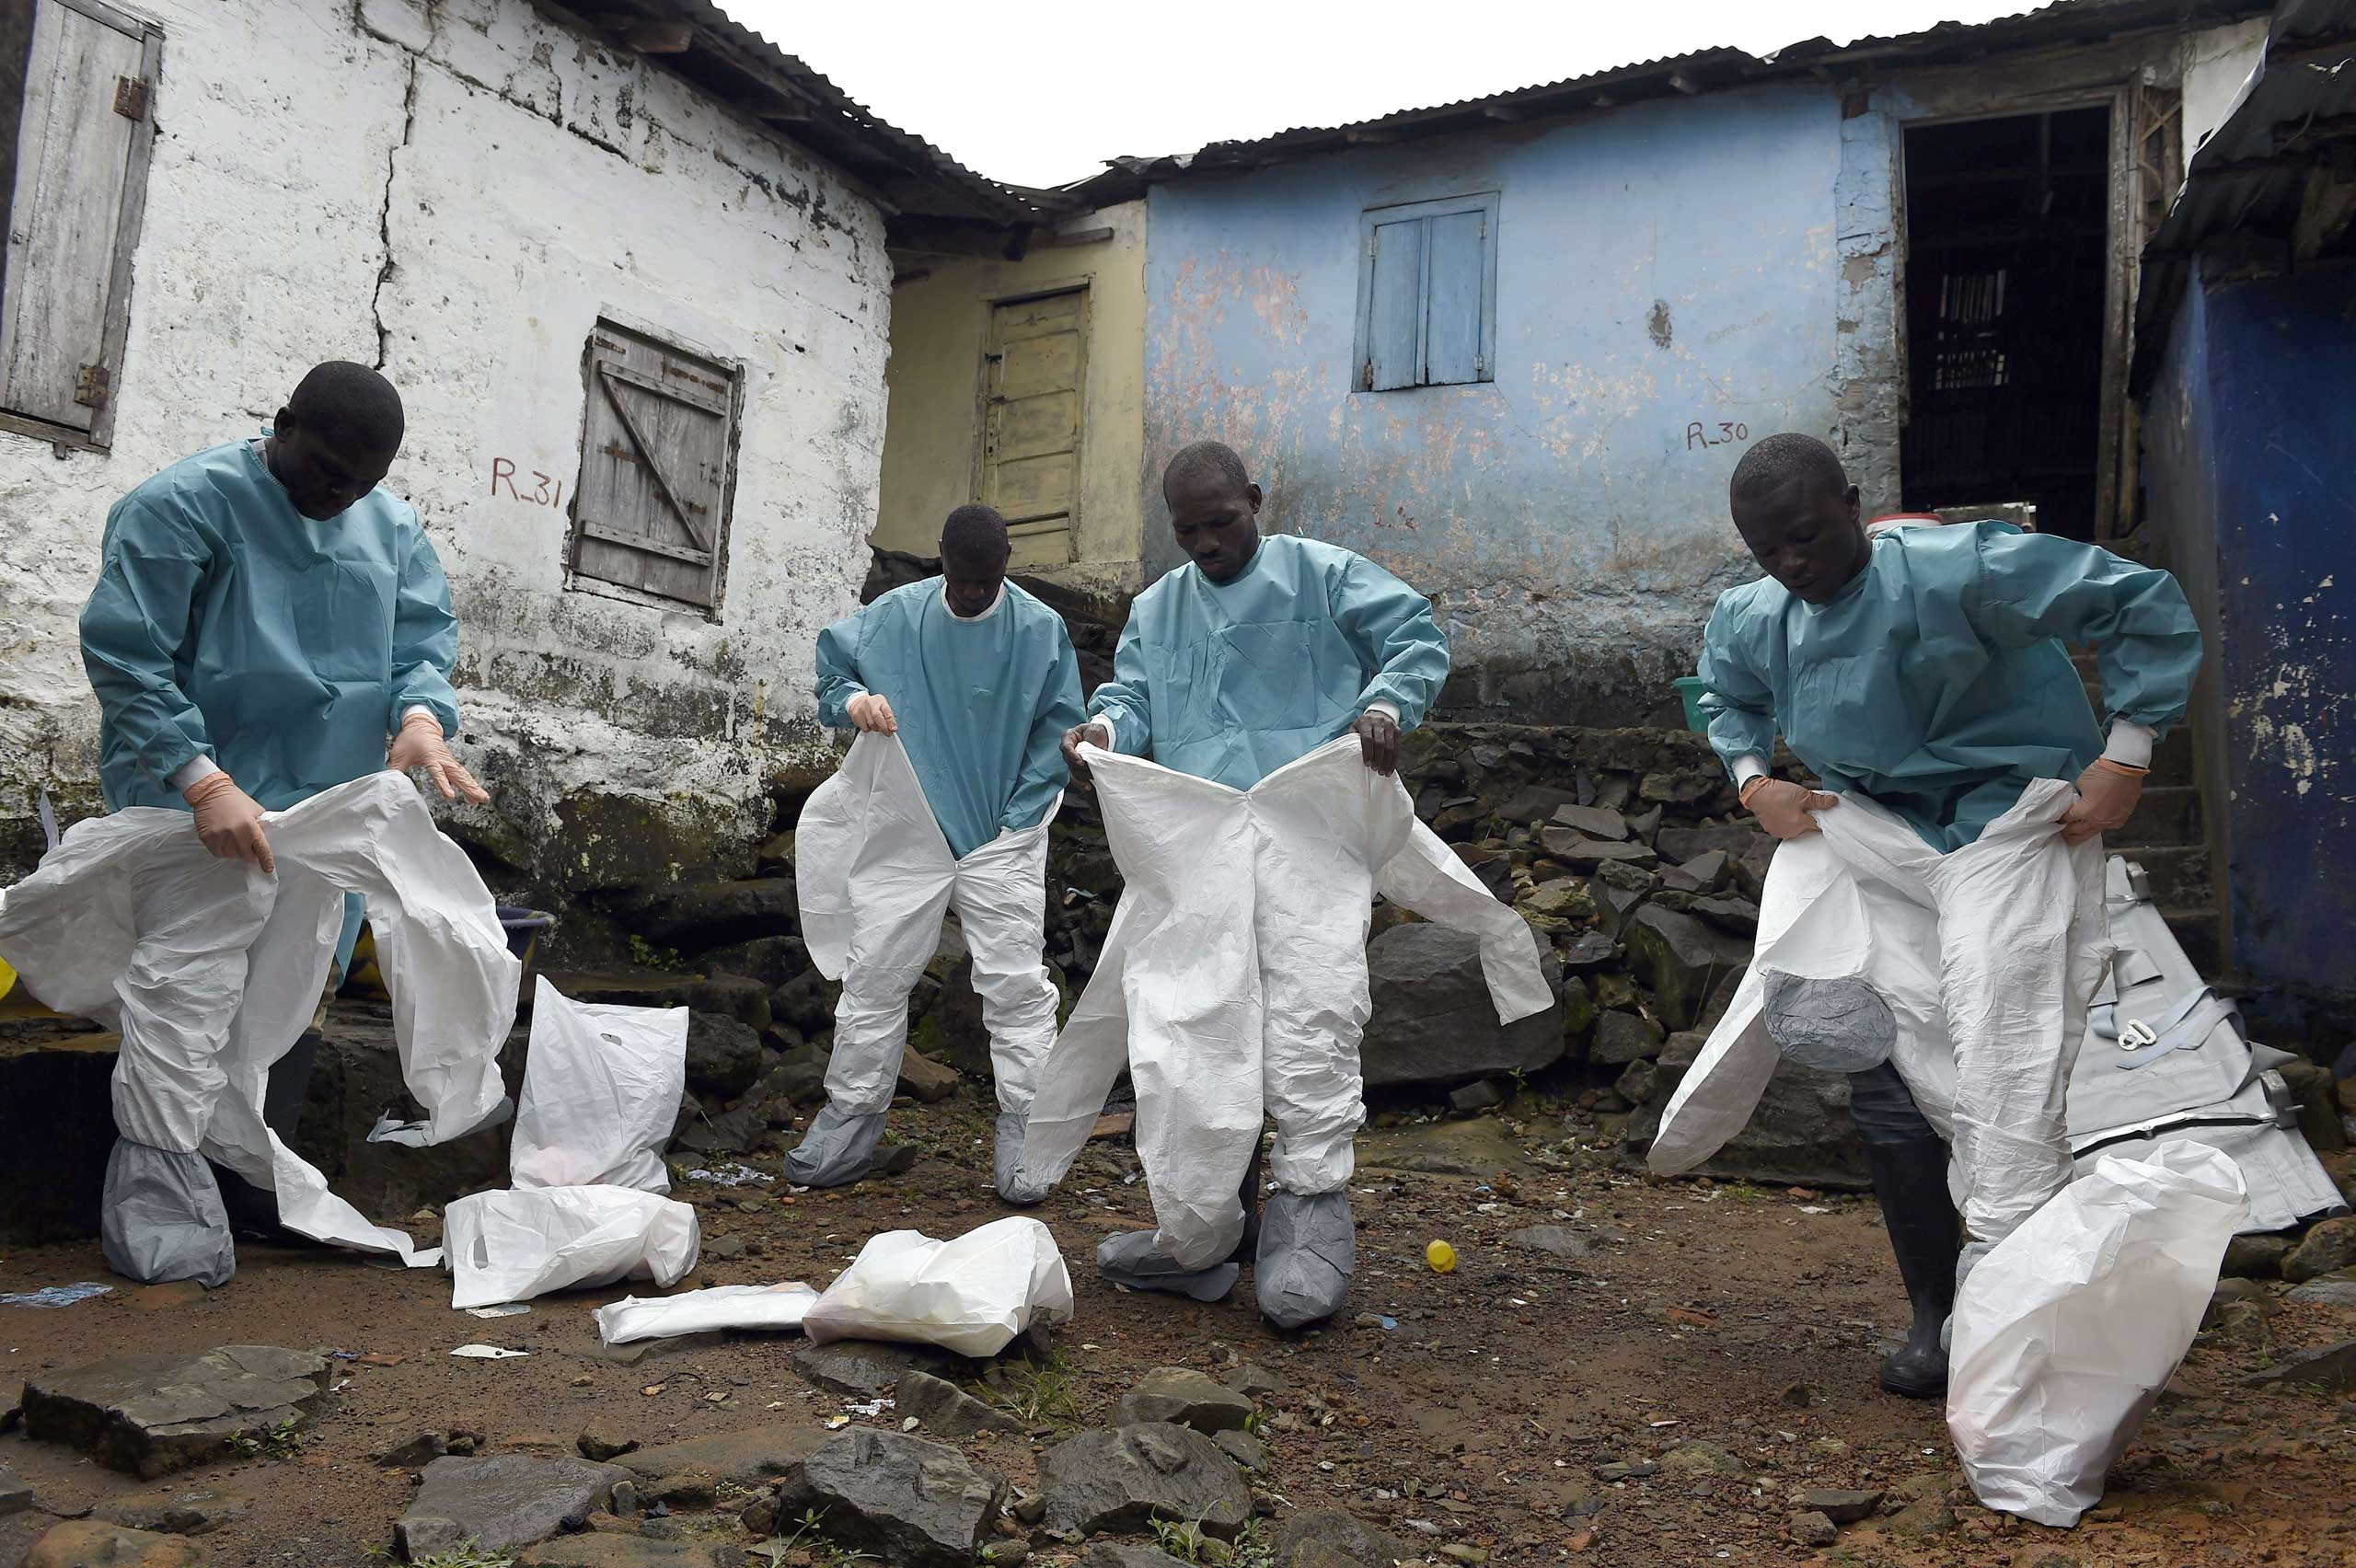 Sept. 29, 2014. Medical staff members of the Croix Rouge NGO put on protective suits before collecting the corpse of a victim of Ebola, in Monrovia. Of the four west African nations affected by the Ebola outbreak, Liberia has been hit the hardest, with 3,458 people infected -- more than half of the total number of cases. Of those, 1,830 have died, according to a WHO count released on September 27.